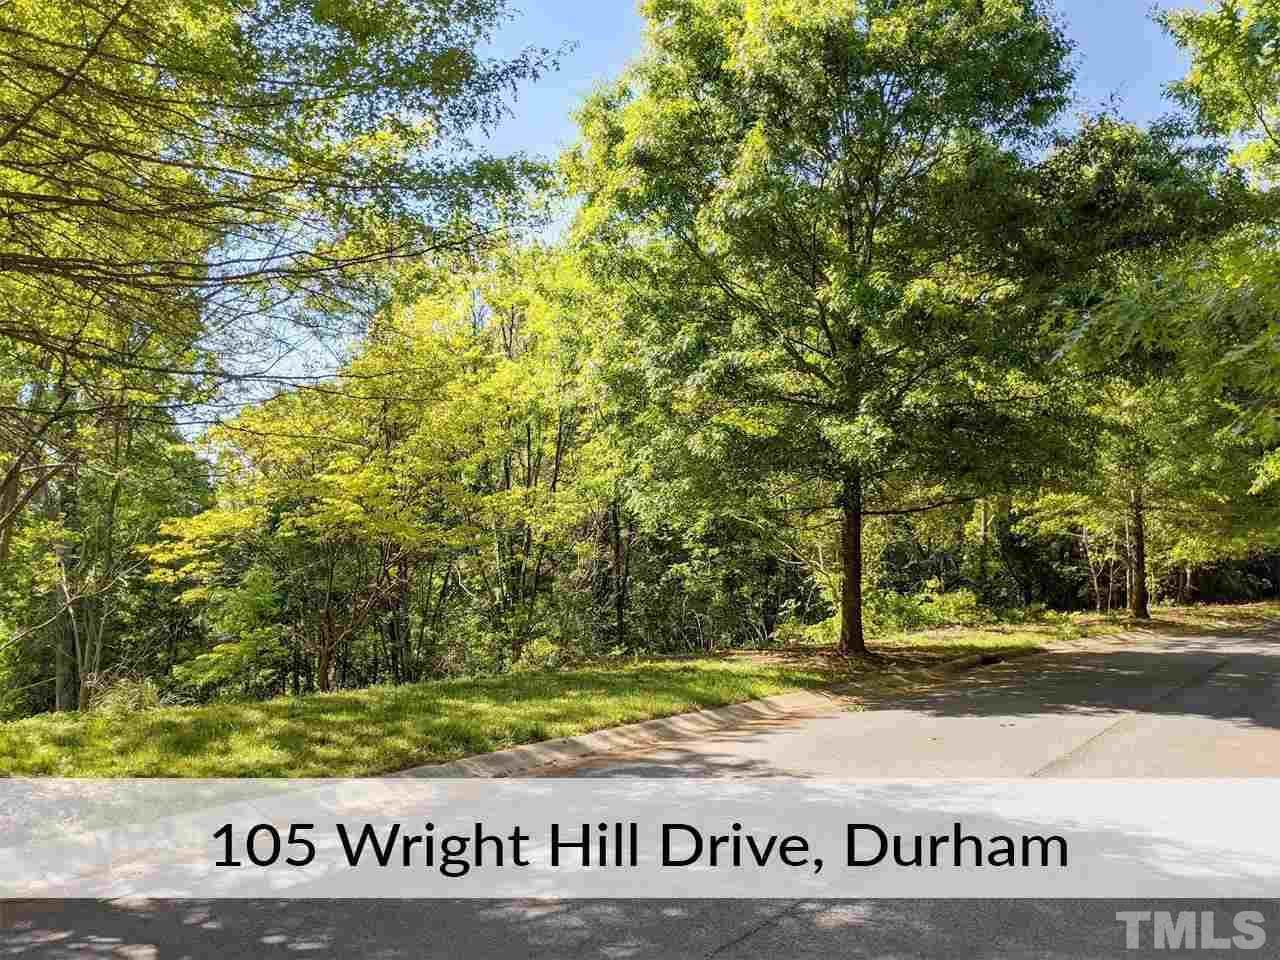 105 Wright Hill Drive - Photo 1